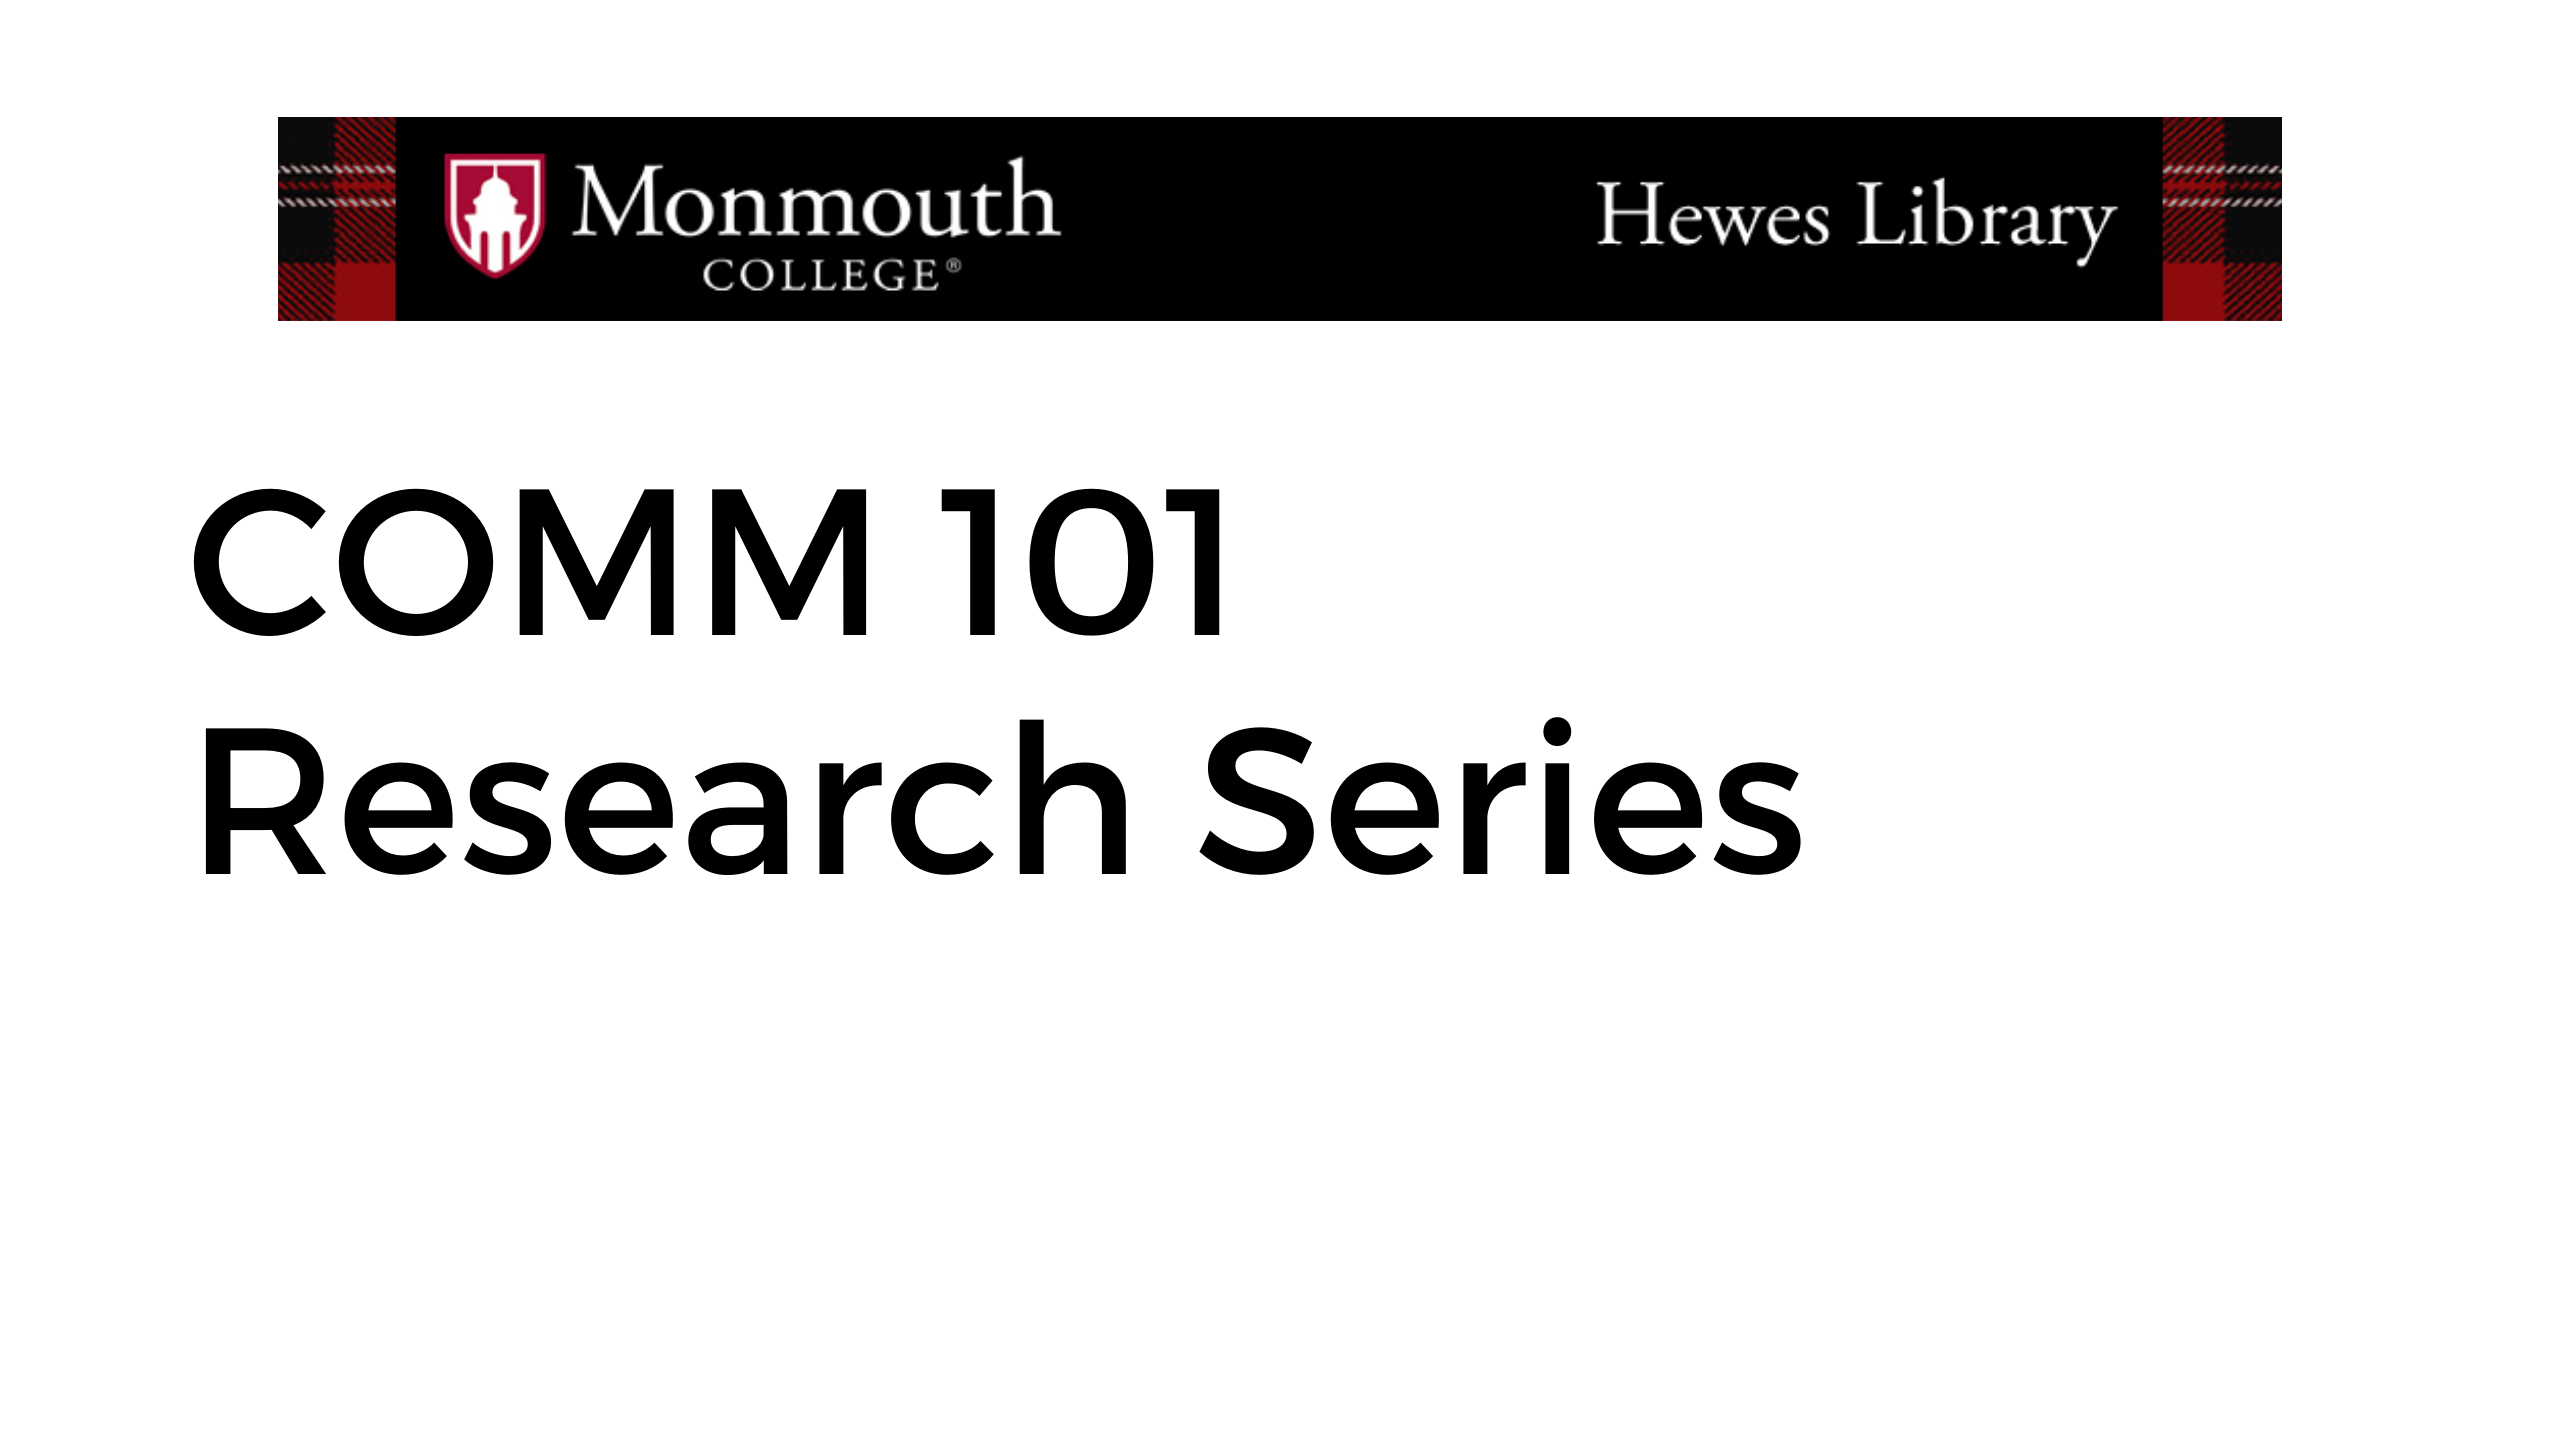 COMM 101 research series